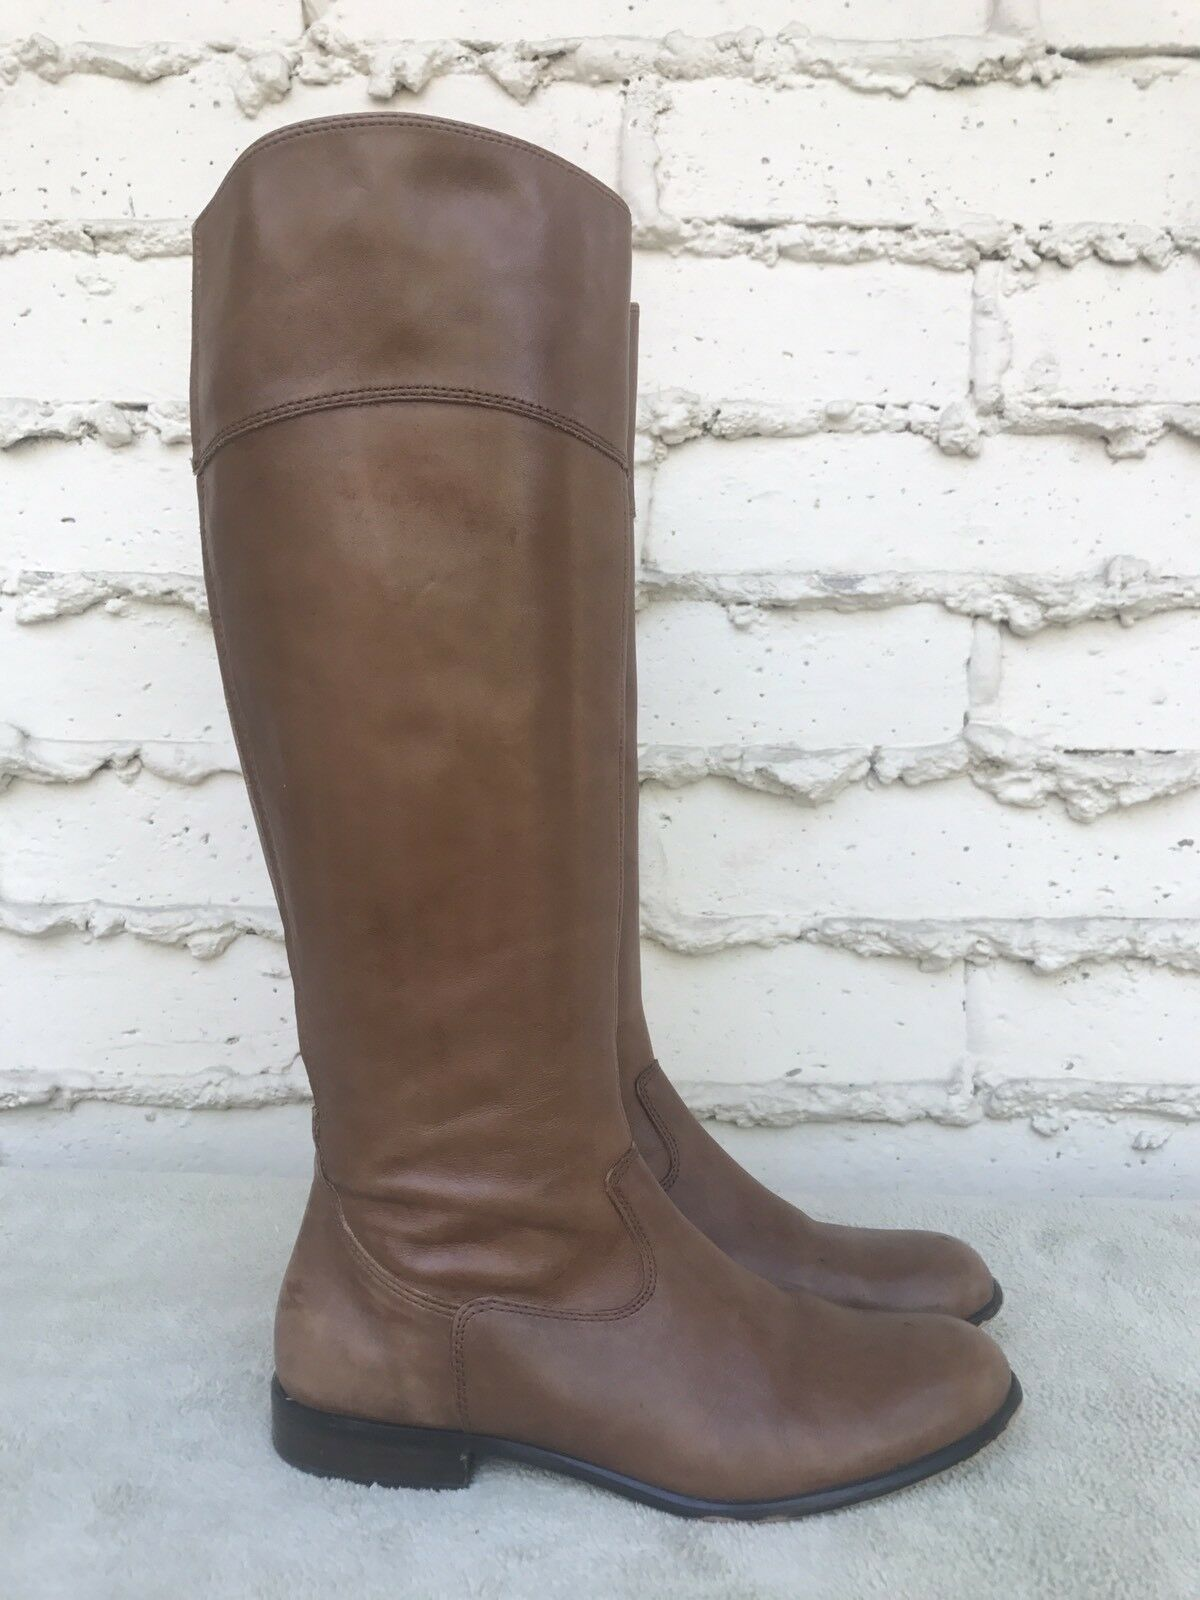 EUC CORSO COMO Women Riding Boot Brown Leather Tall Knee High Size US 7 M